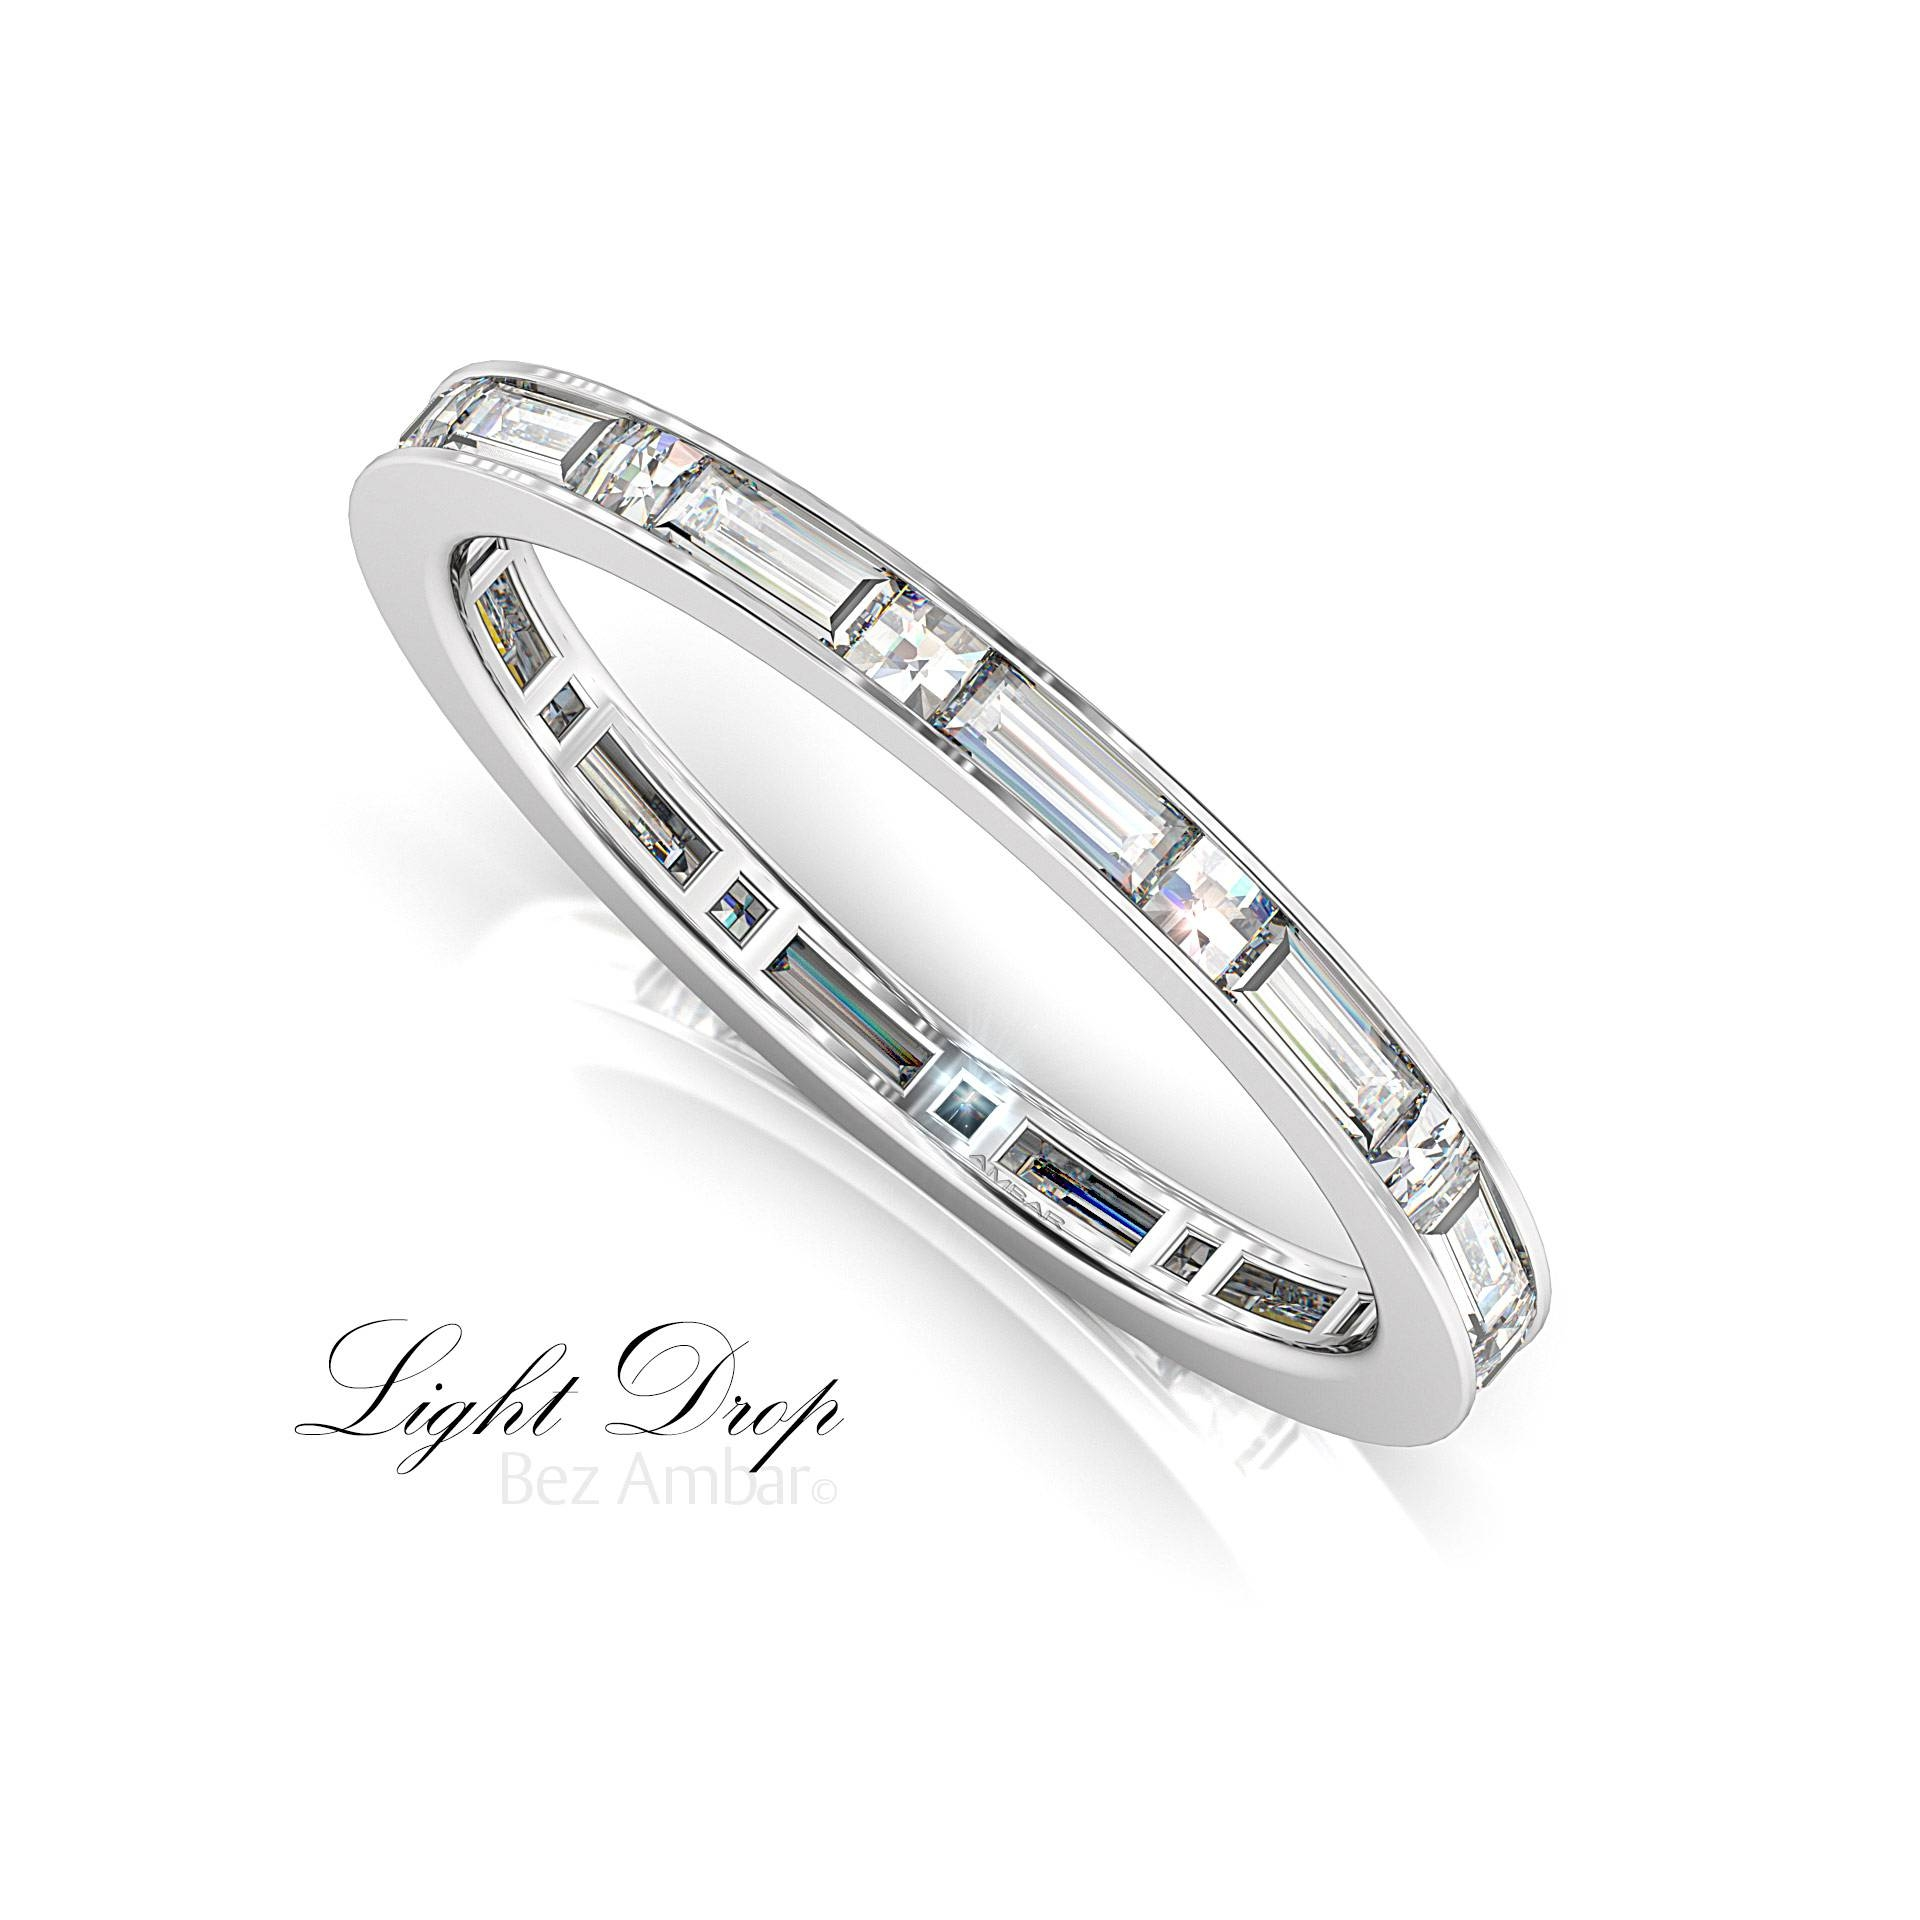 A Blaze And Baguette Cut Diamond Eternity Ring With Most Popular Anniversary Rings With Baguettes (View 9 of 25)